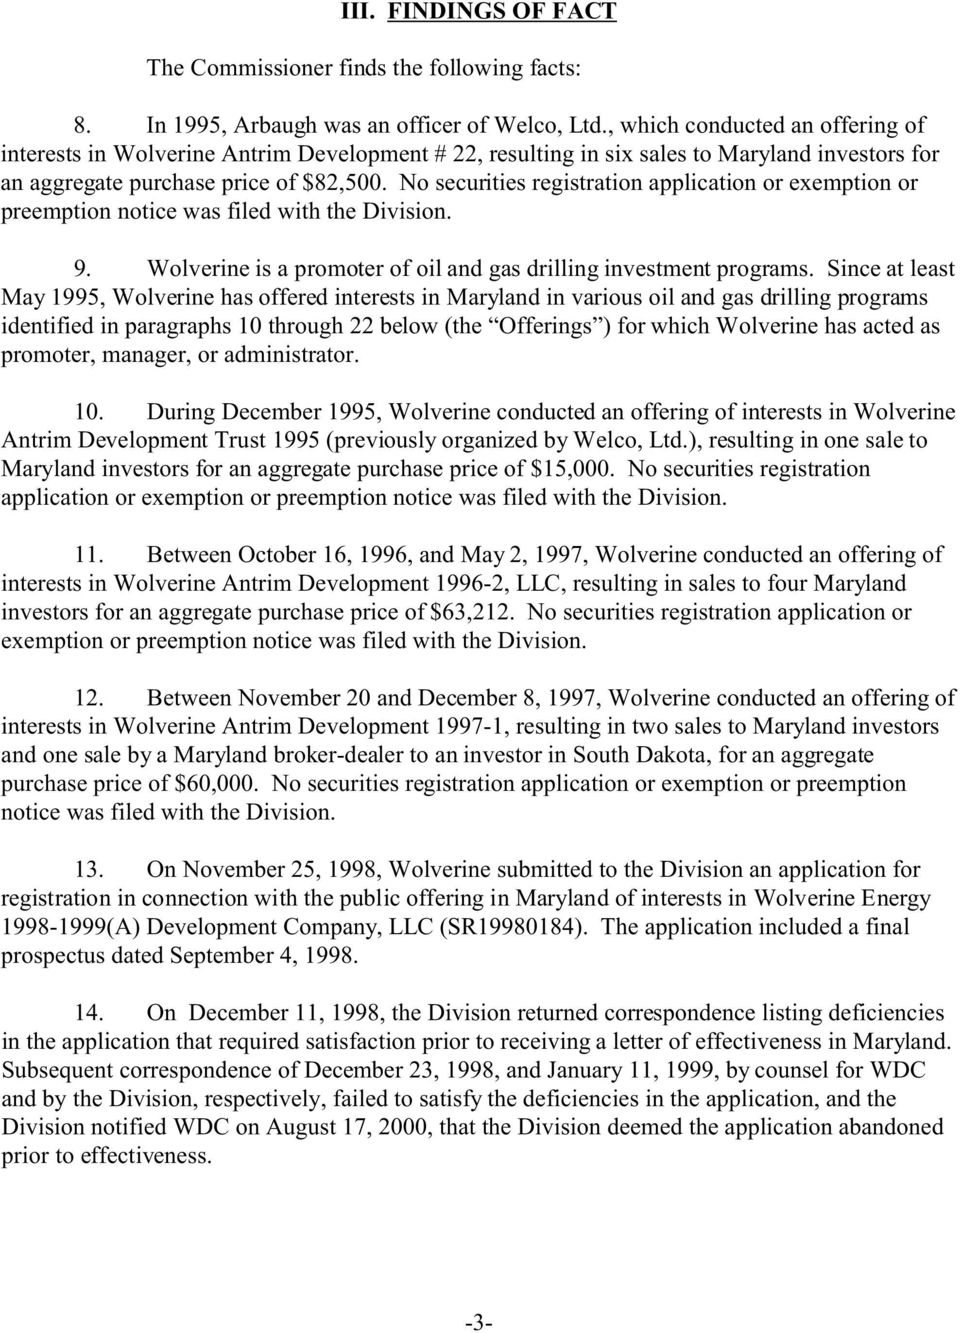 No securities registration application or exemption or preemption notice was filed with the Division. 9. Wolverine is a promoter of oil and gas drilling investment programs.